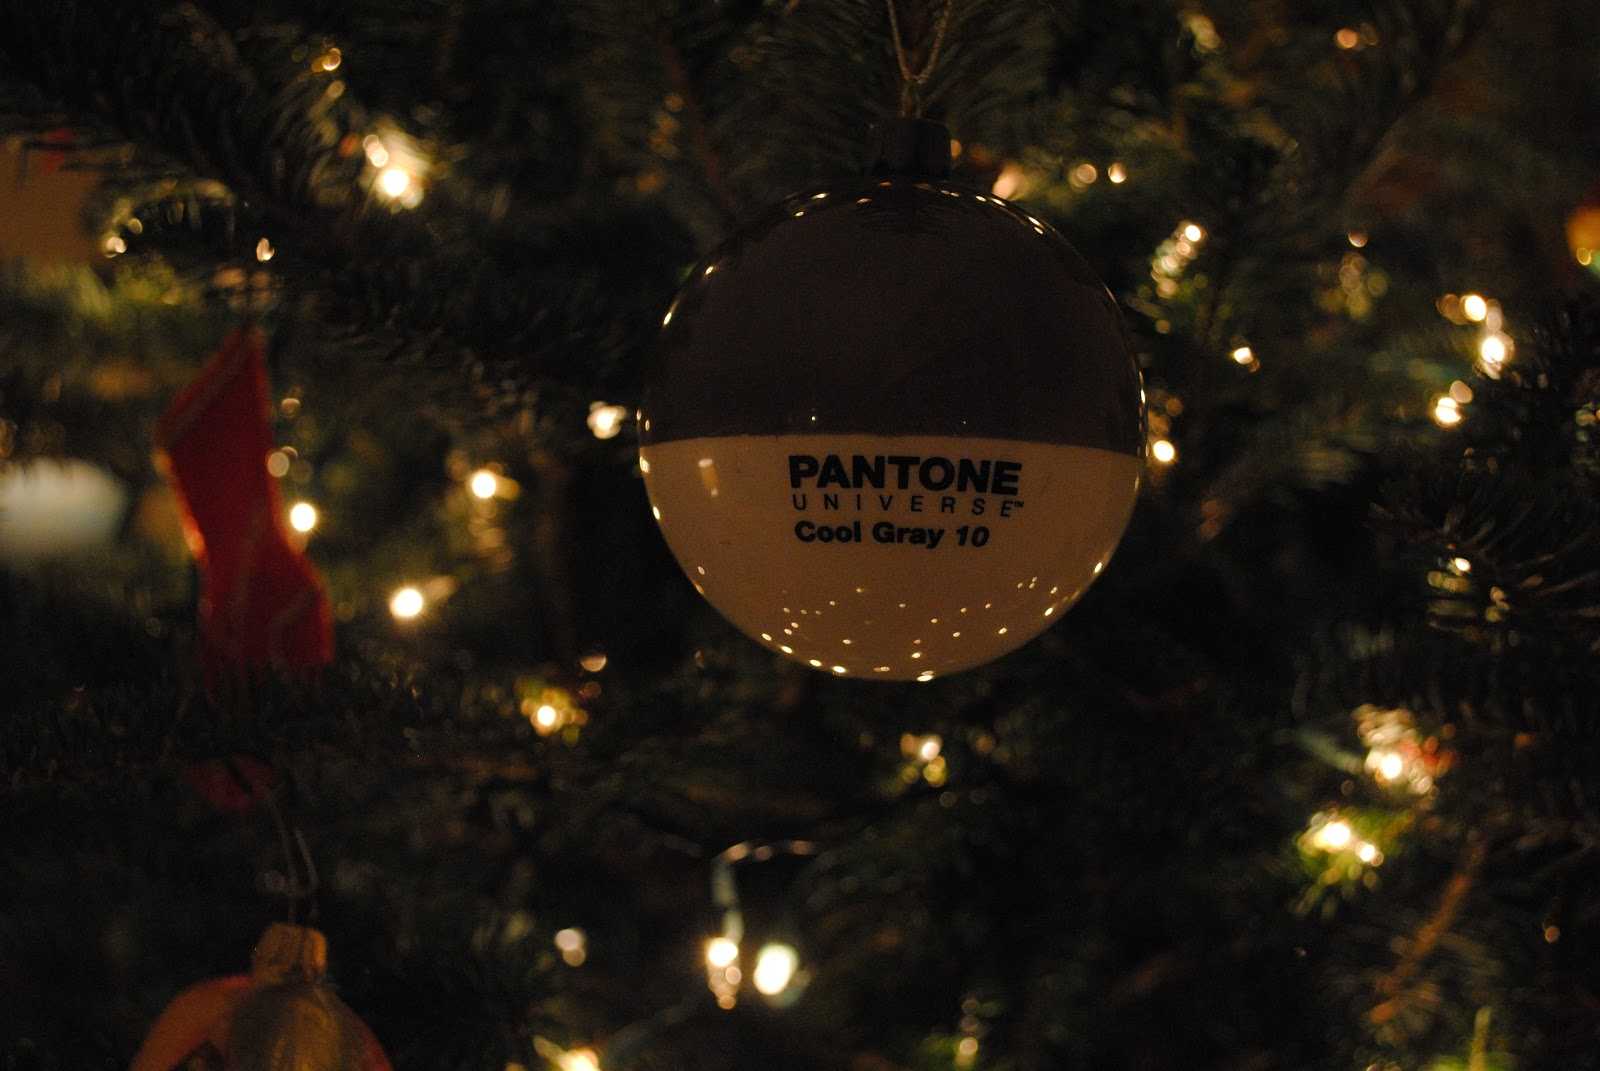 Pantone Christmas Ornaments A Perfect Gray Christmas Surprise